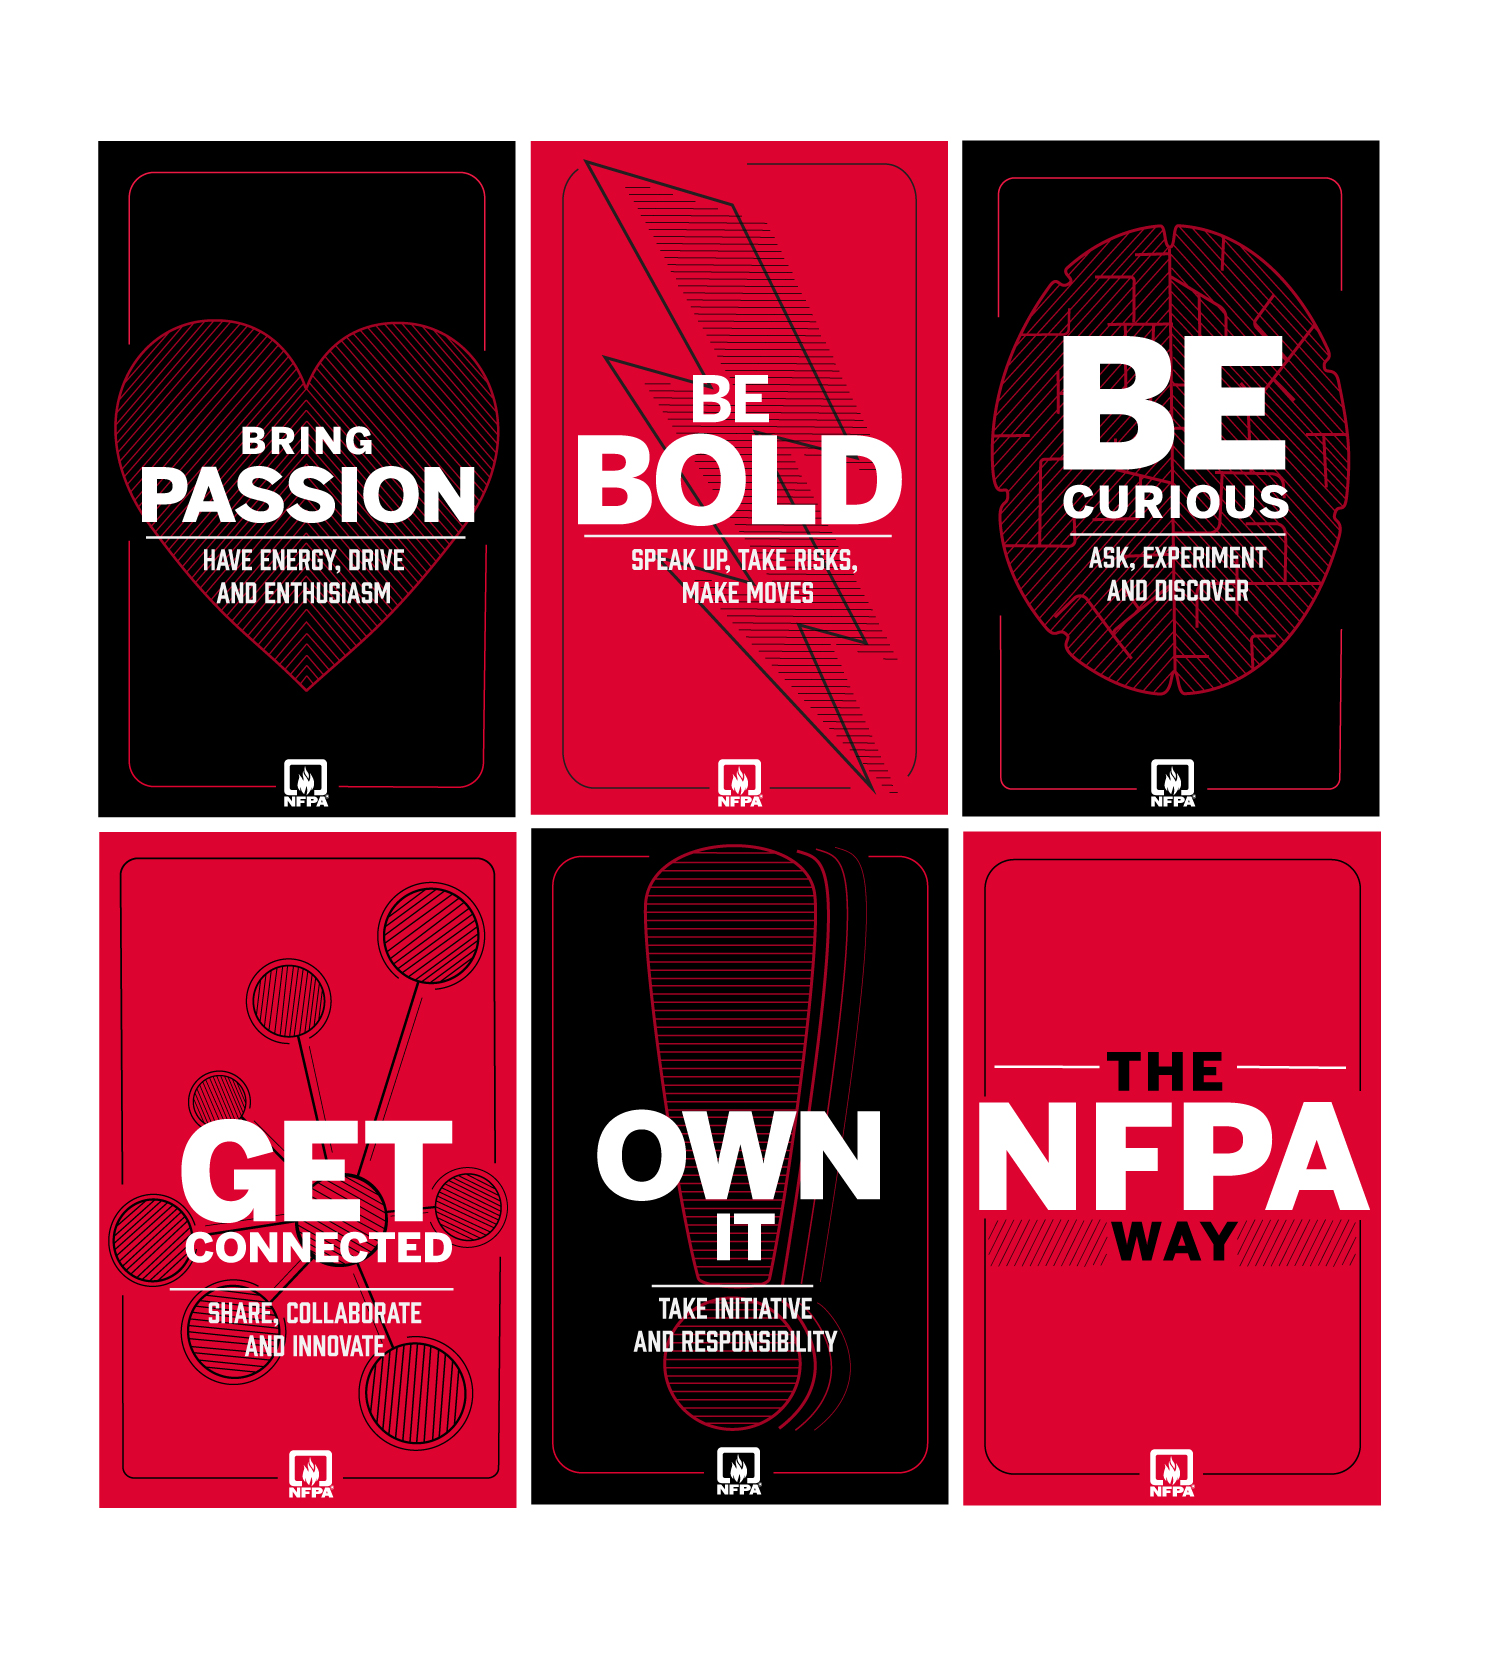 NFPA-Values-Graphic--color-wall-unit.jpg